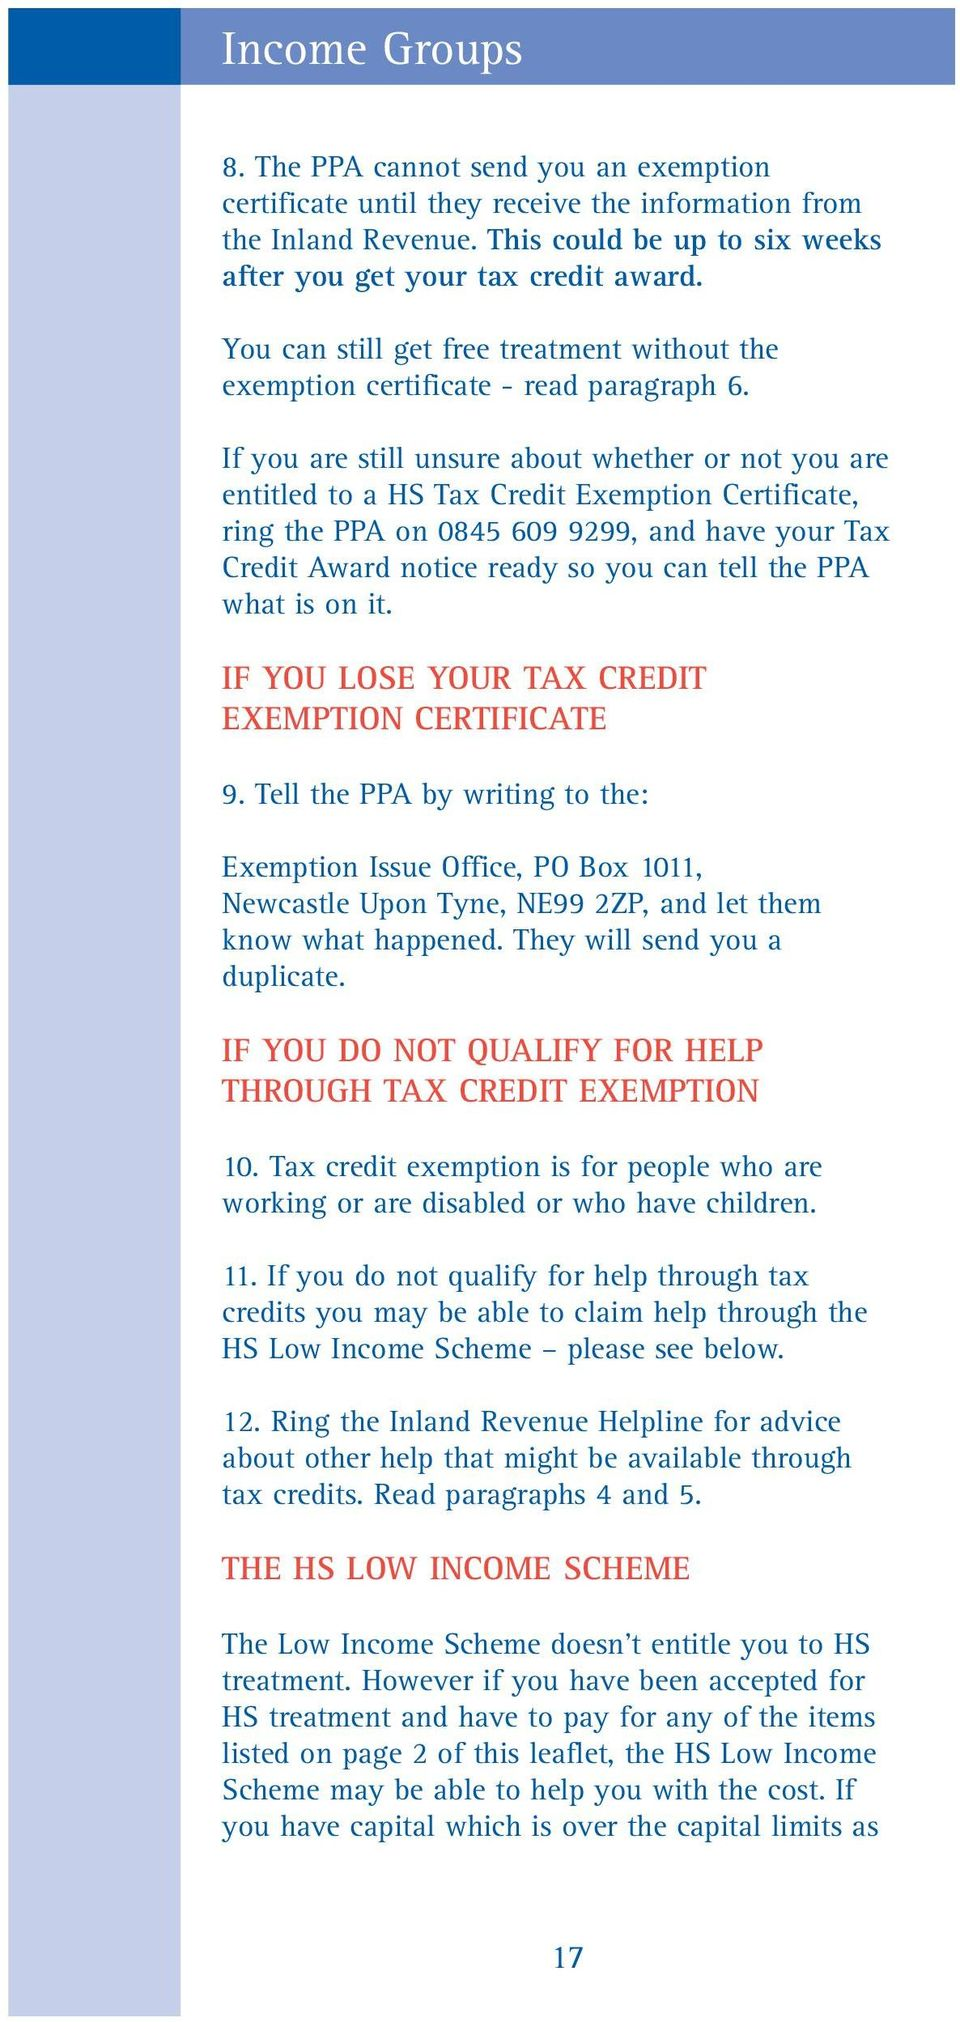 If you are still unsure about whether or not you are entitled to a HS Tax Credit Exemption Certificate, ring the PPA on 0845 609 9299, and have your Tax Credit Award notice ready so you can tell the